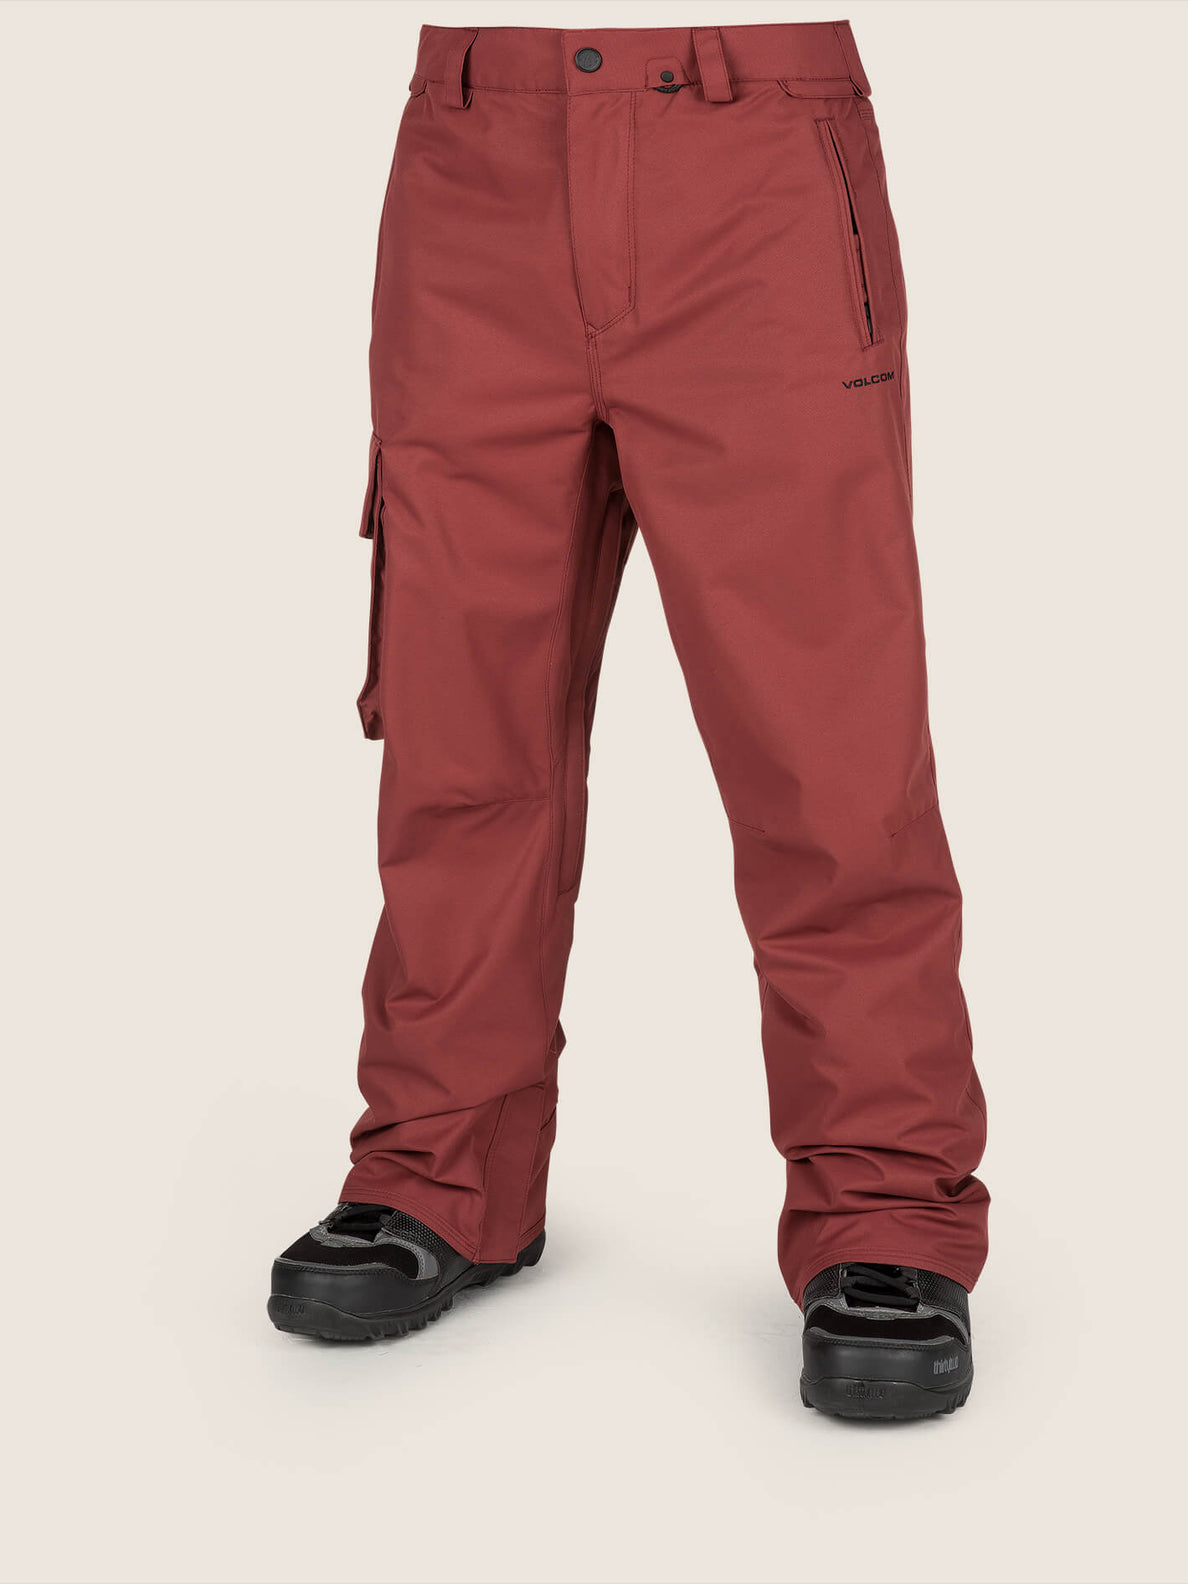 Ventral Pant In Burnt Red, Front View